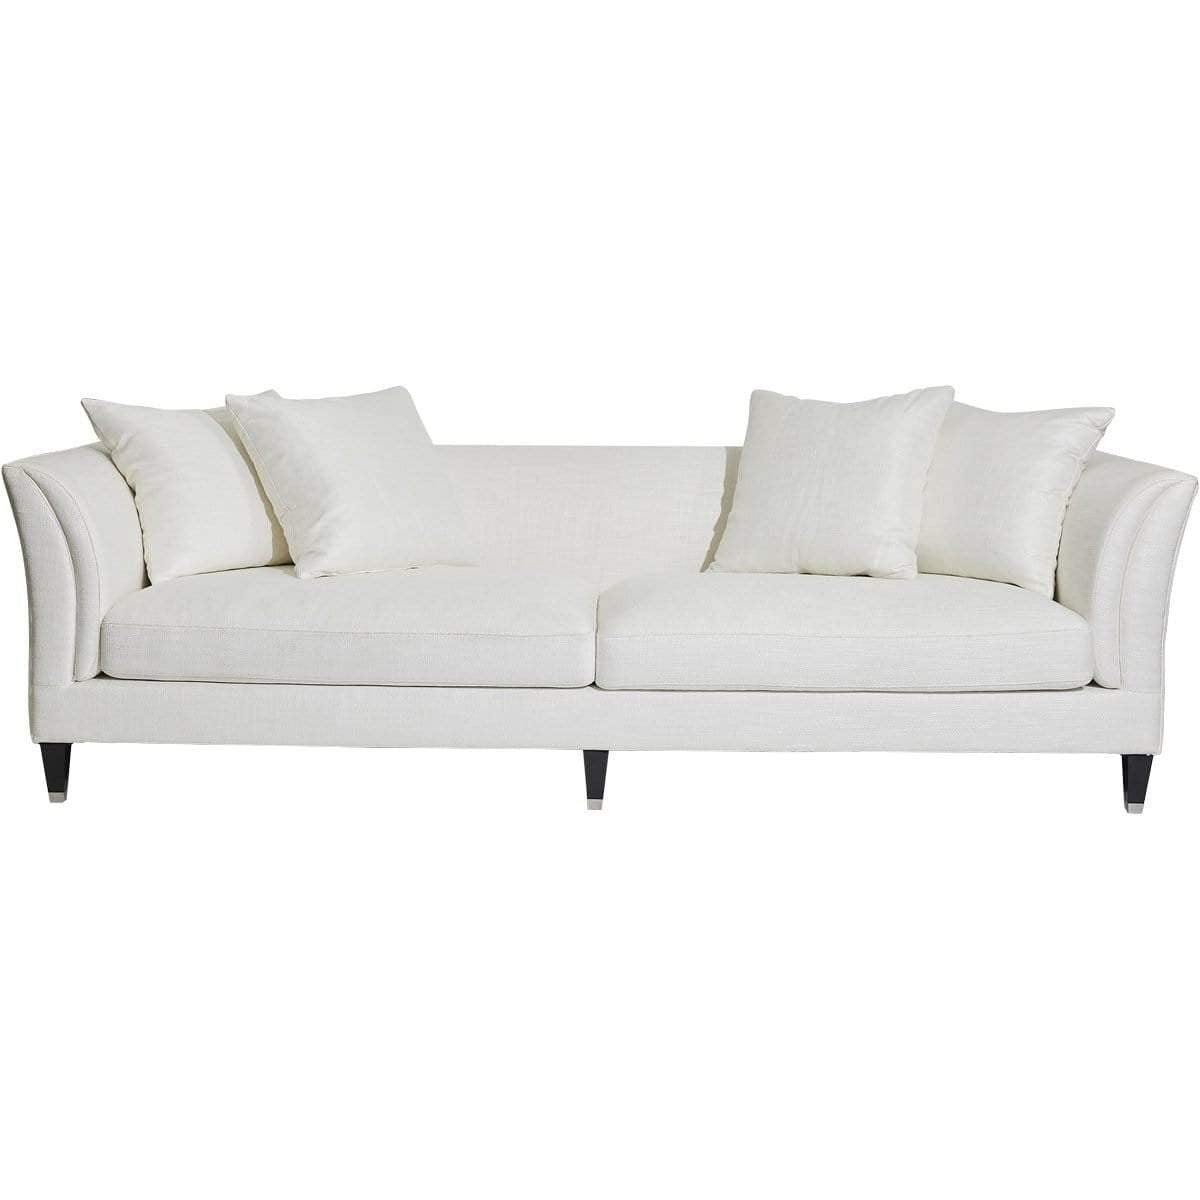 Tailor Upholstered Sofa - 3 Seater